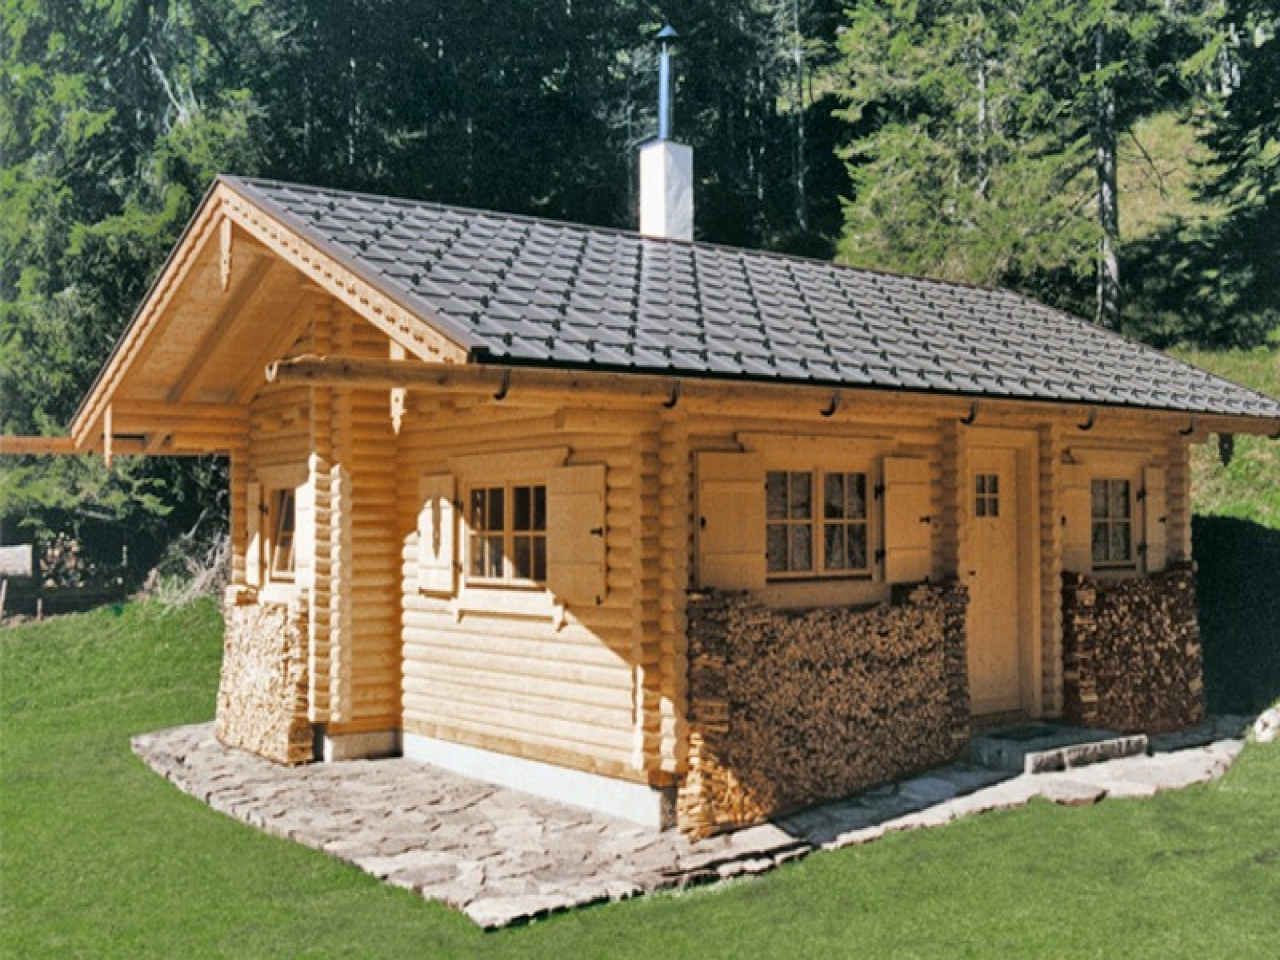 Hunting Cabin Plans Inexpensive Small Cabin Plans, hunting